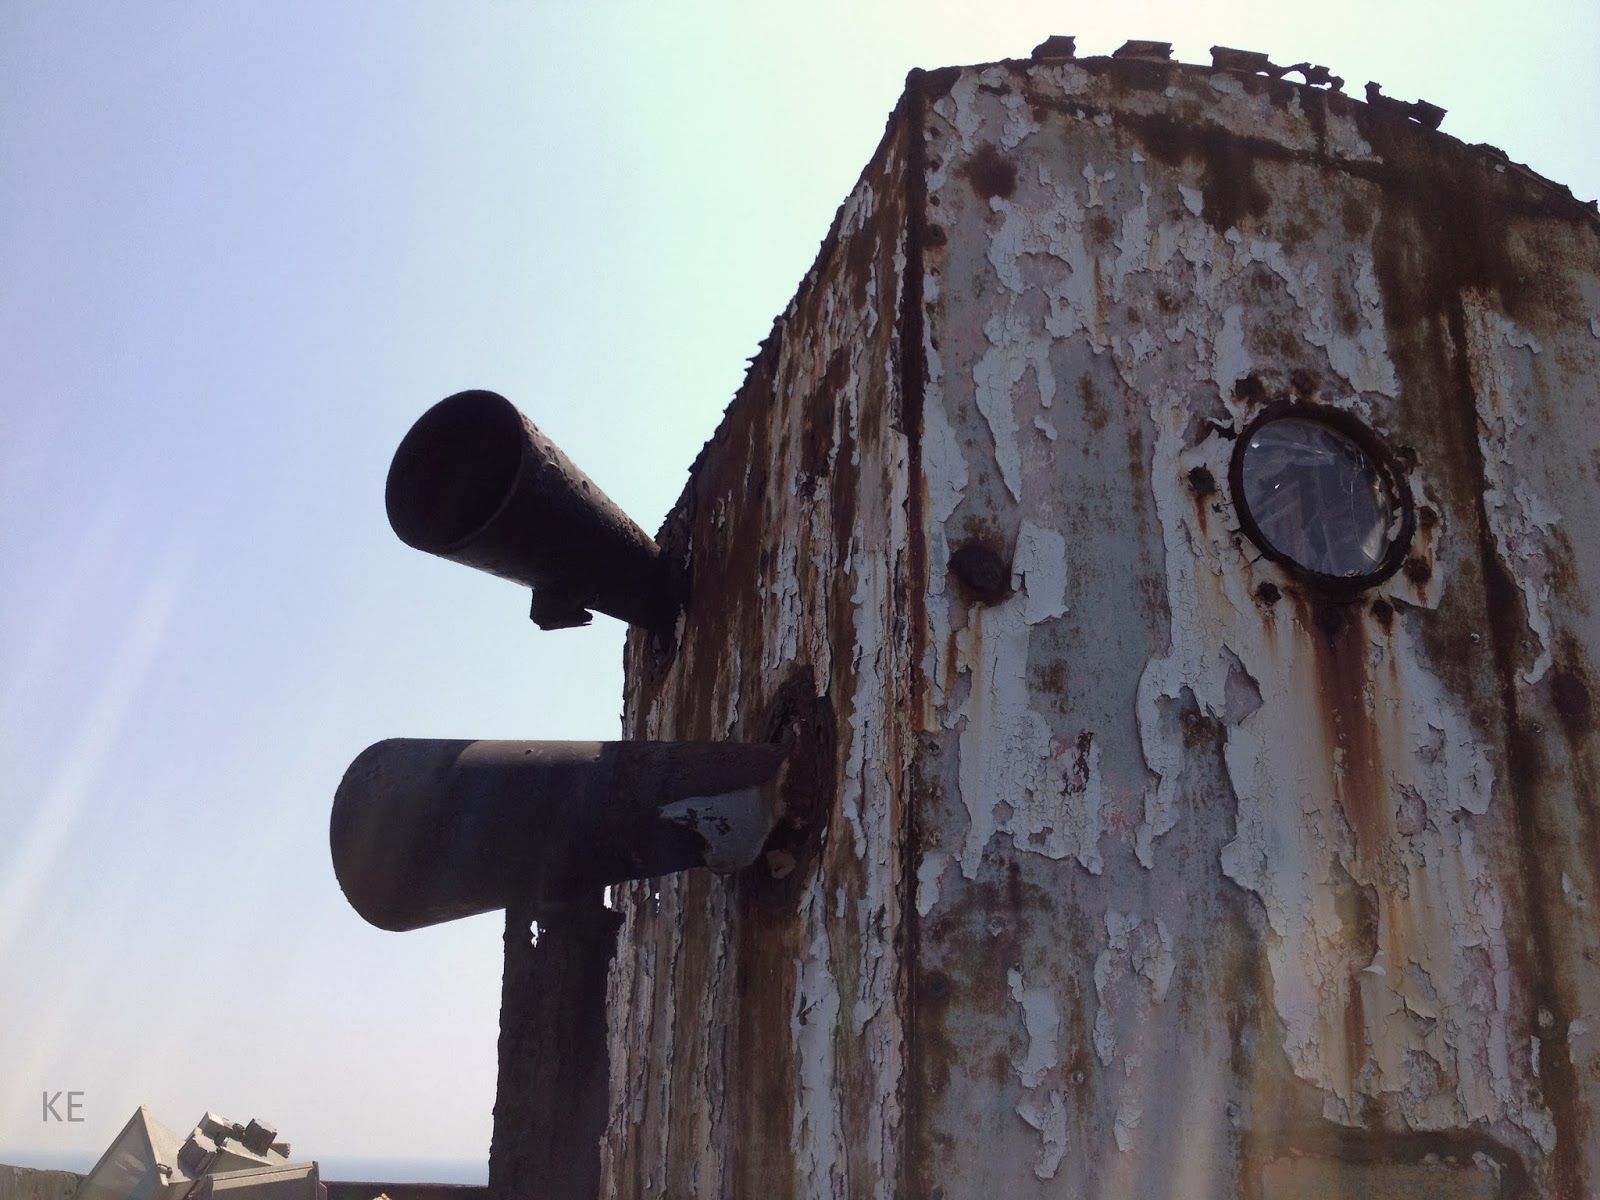 waglan shutter island hongkong flâneur ghost stories are commonplace for deserted places like waglan island one is recorded in the essay hong kong s lighthouses and the men who manned them by